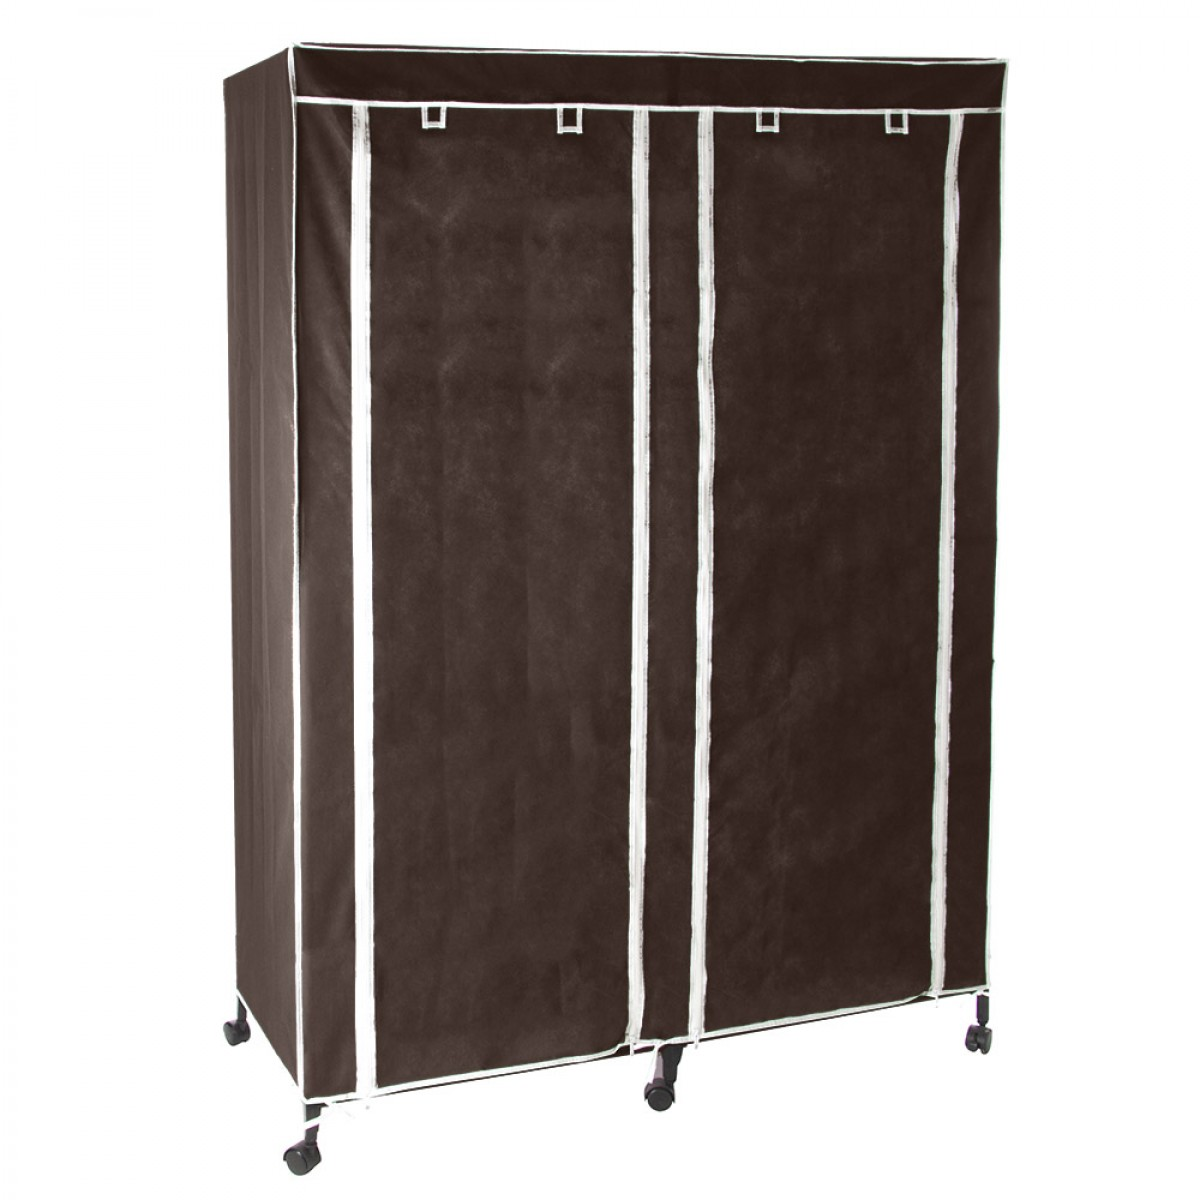 armoire double sur roulettes chocolat les douces nuits. Black Bedroom Furniture Sets. Home Design Ideas